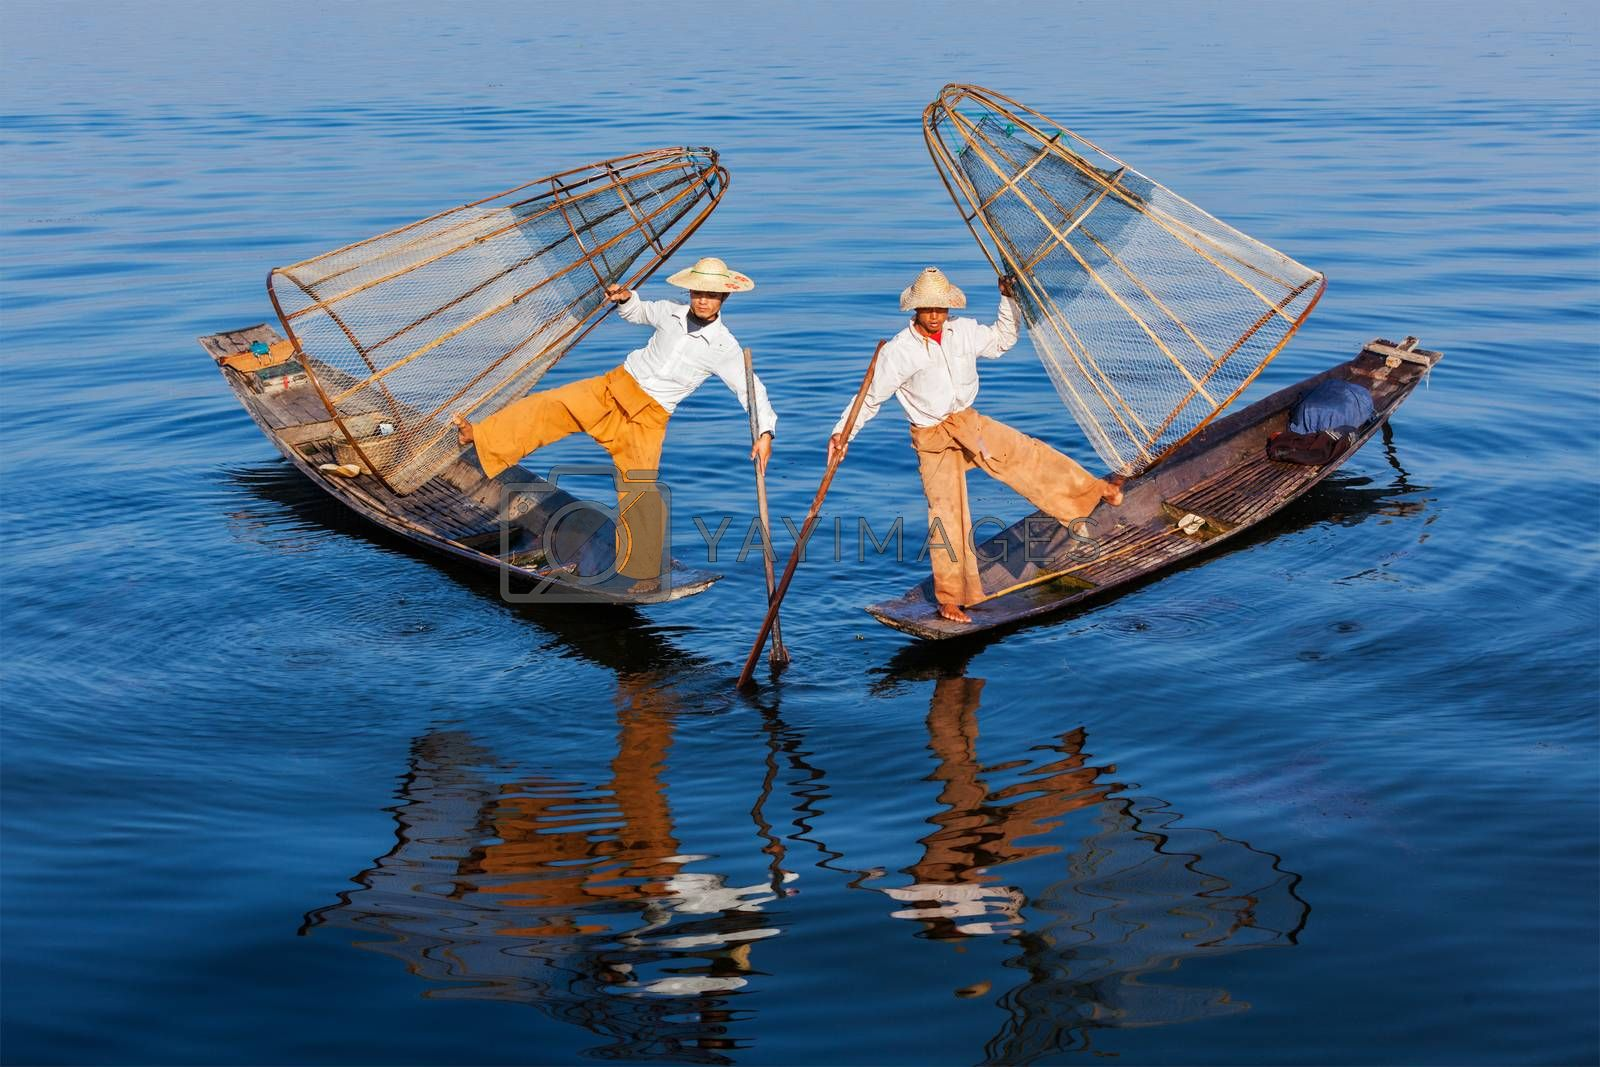 Myanmar travel attraction landmark - Traditional Burmese fishermen balancing with fishing net at Inle lake in Myanmar famous for their distinctive one legged rowing style